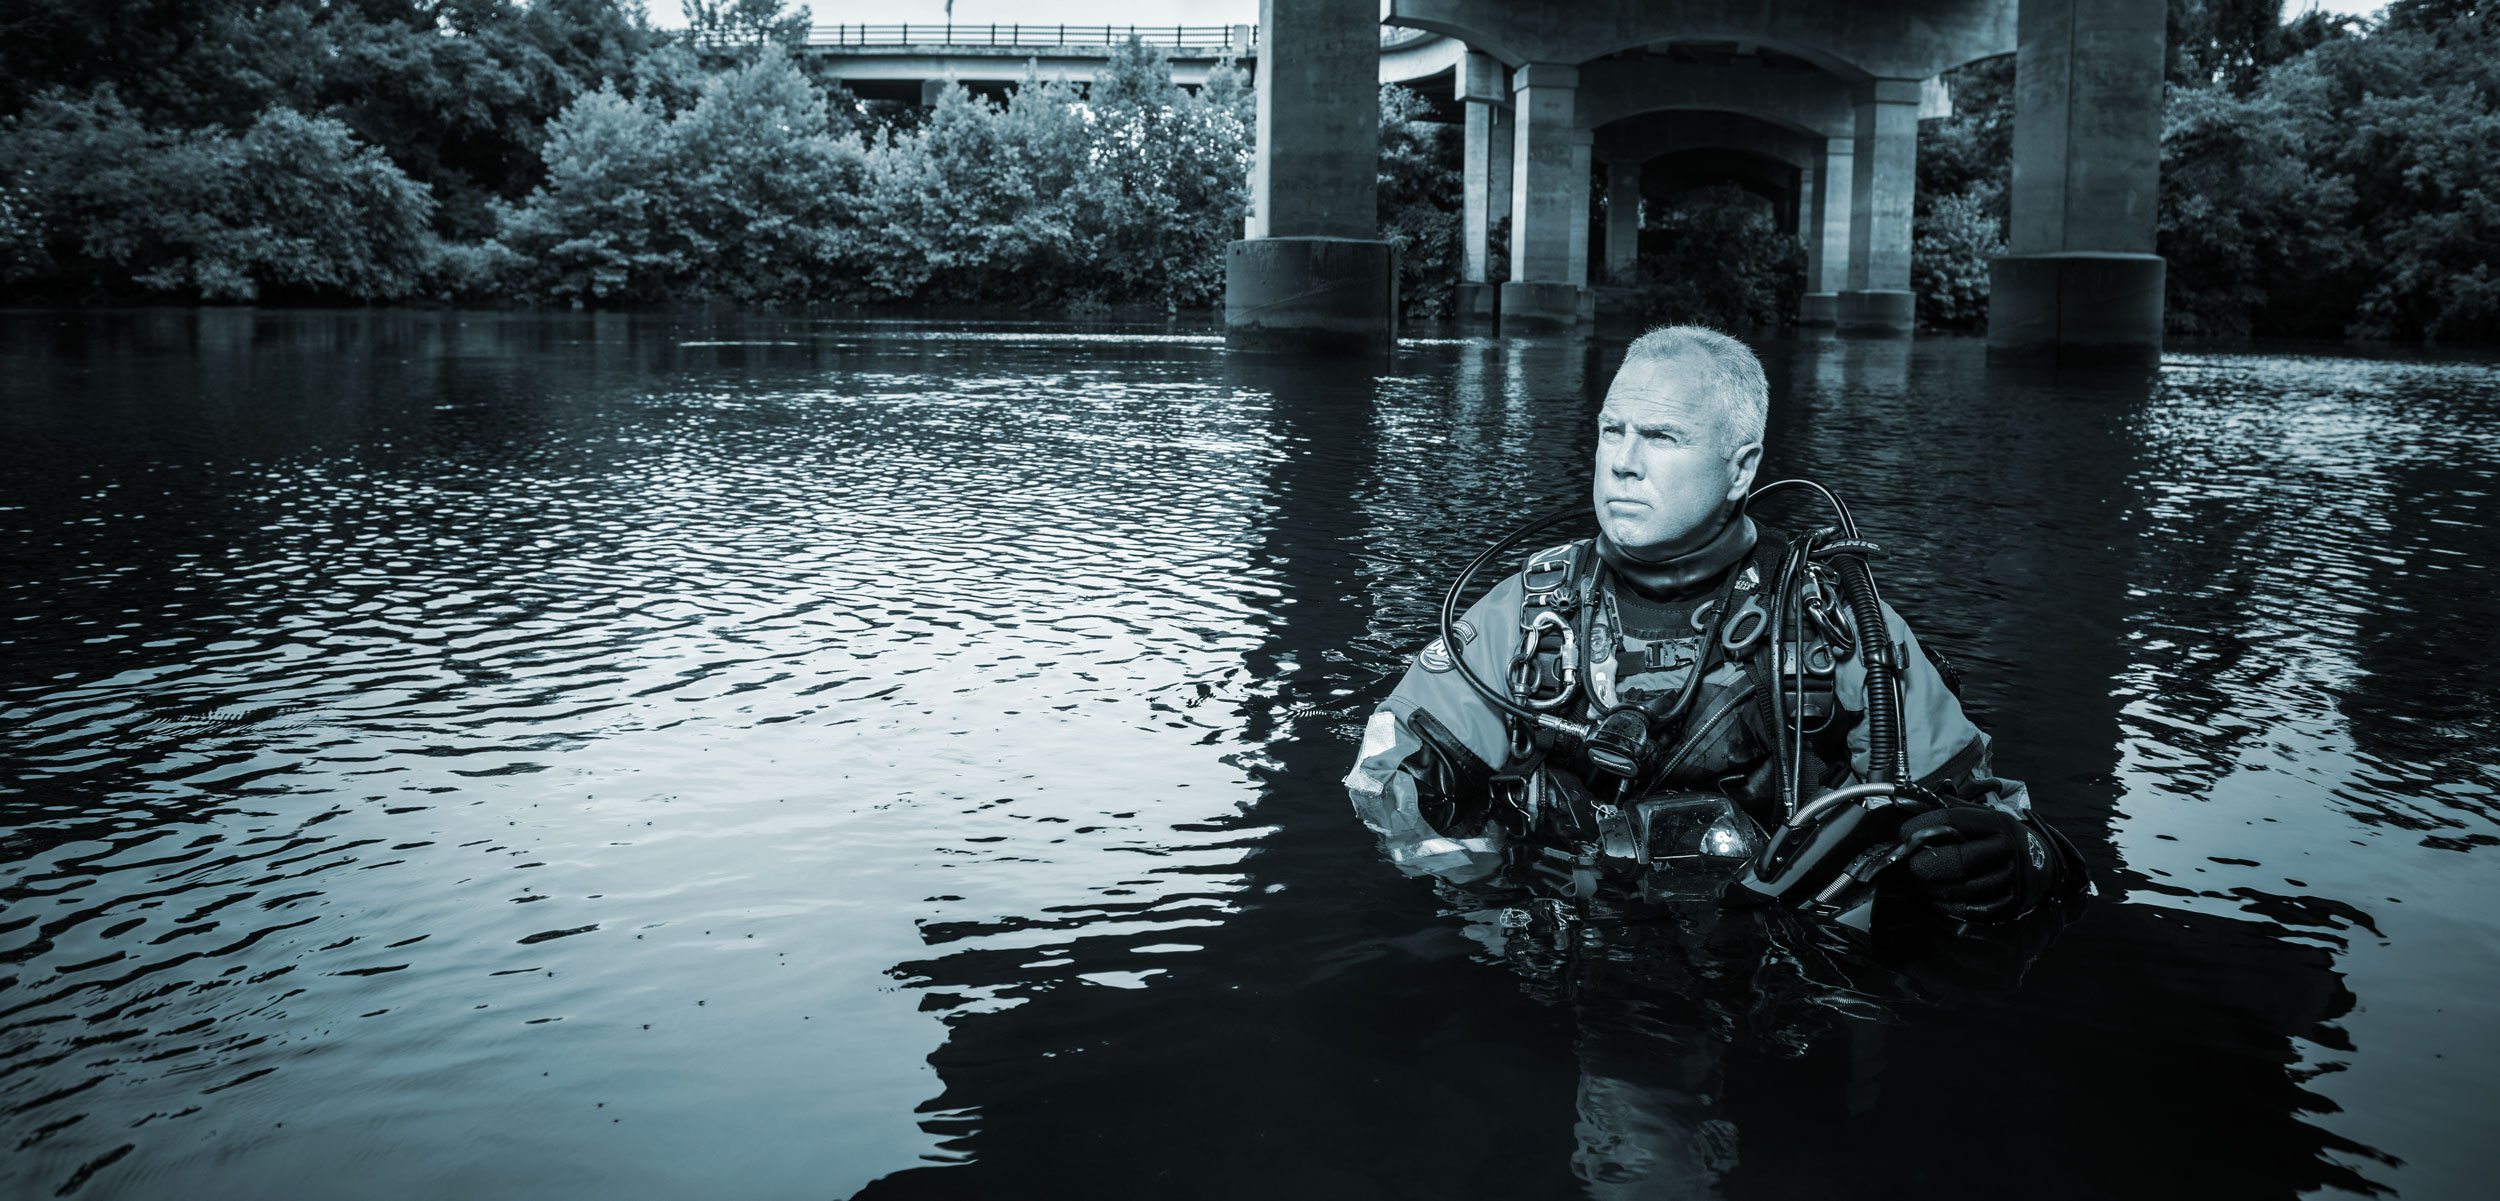 Underwater Investigator Mike Berry poses in a river under a bridge